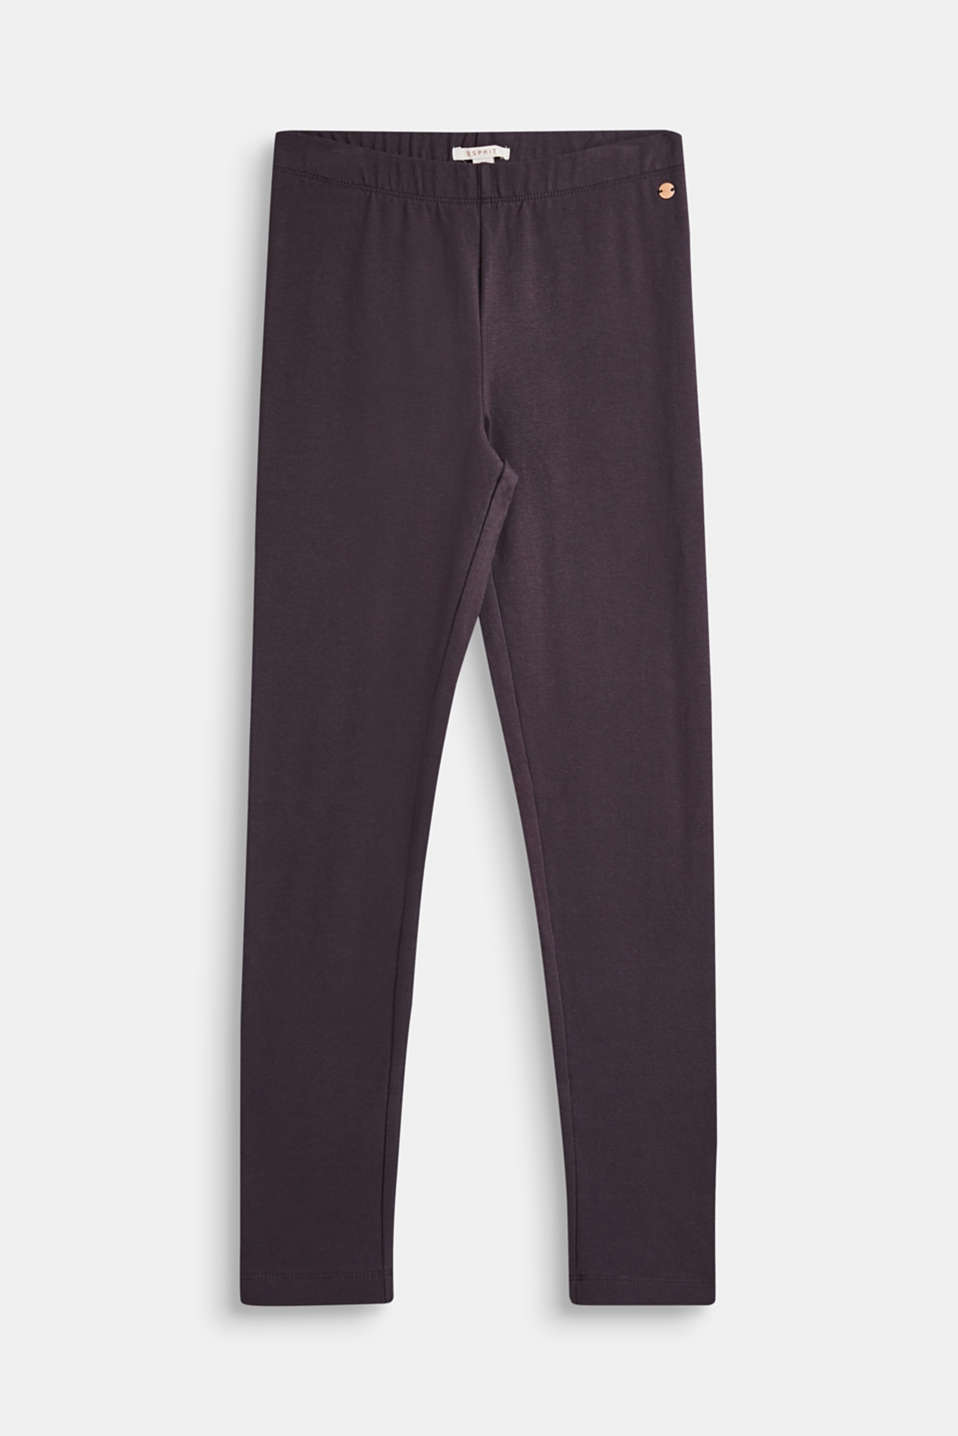 Esprit - Cotton blend jersey leggings